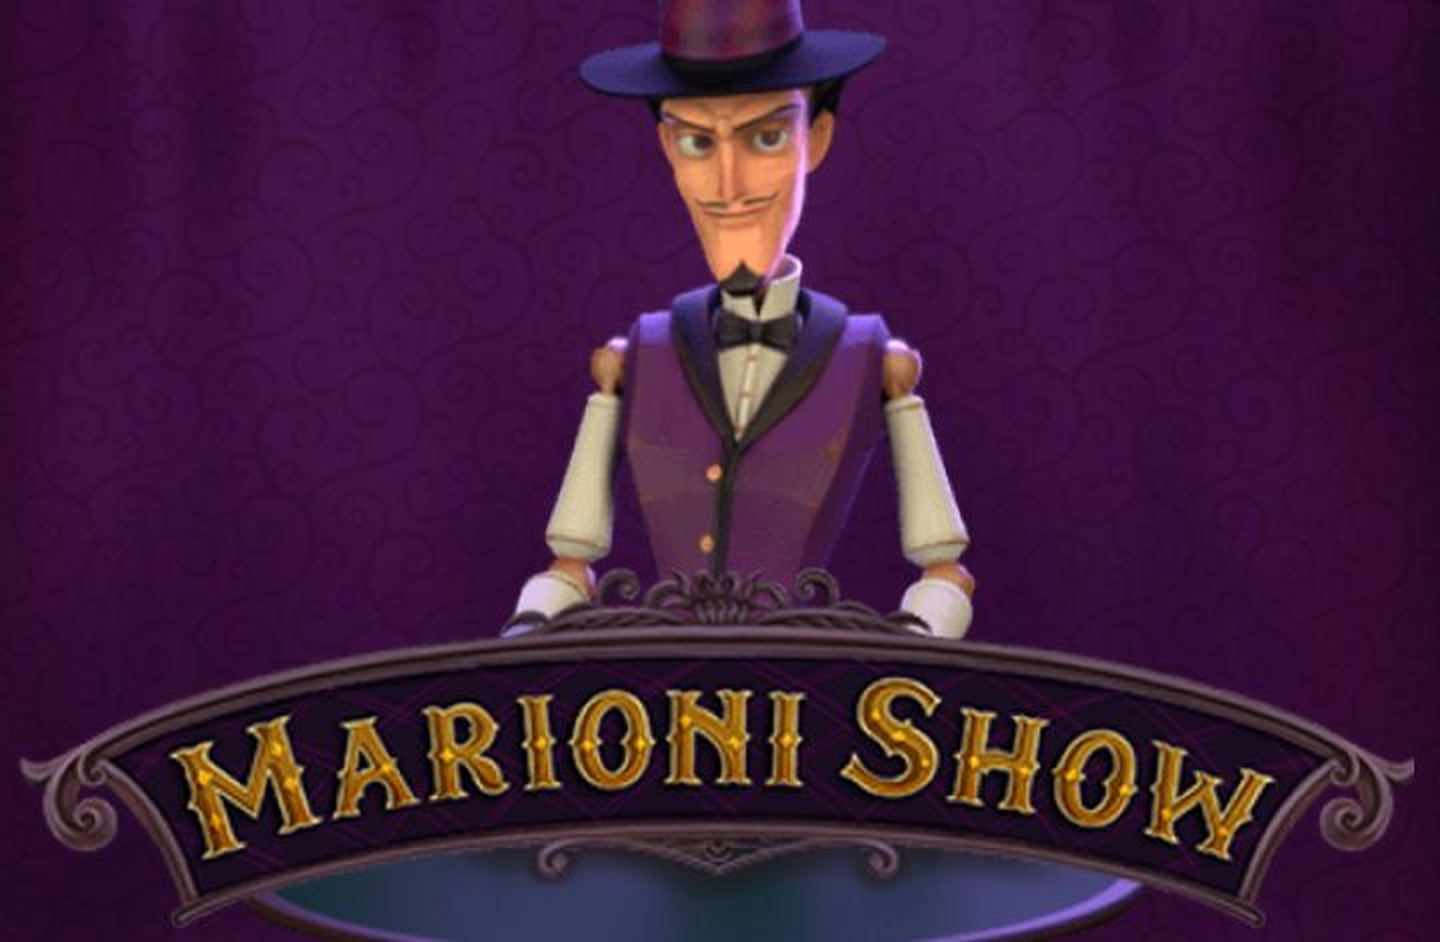 The Marioni Show Online Slot Demo Game by Playson